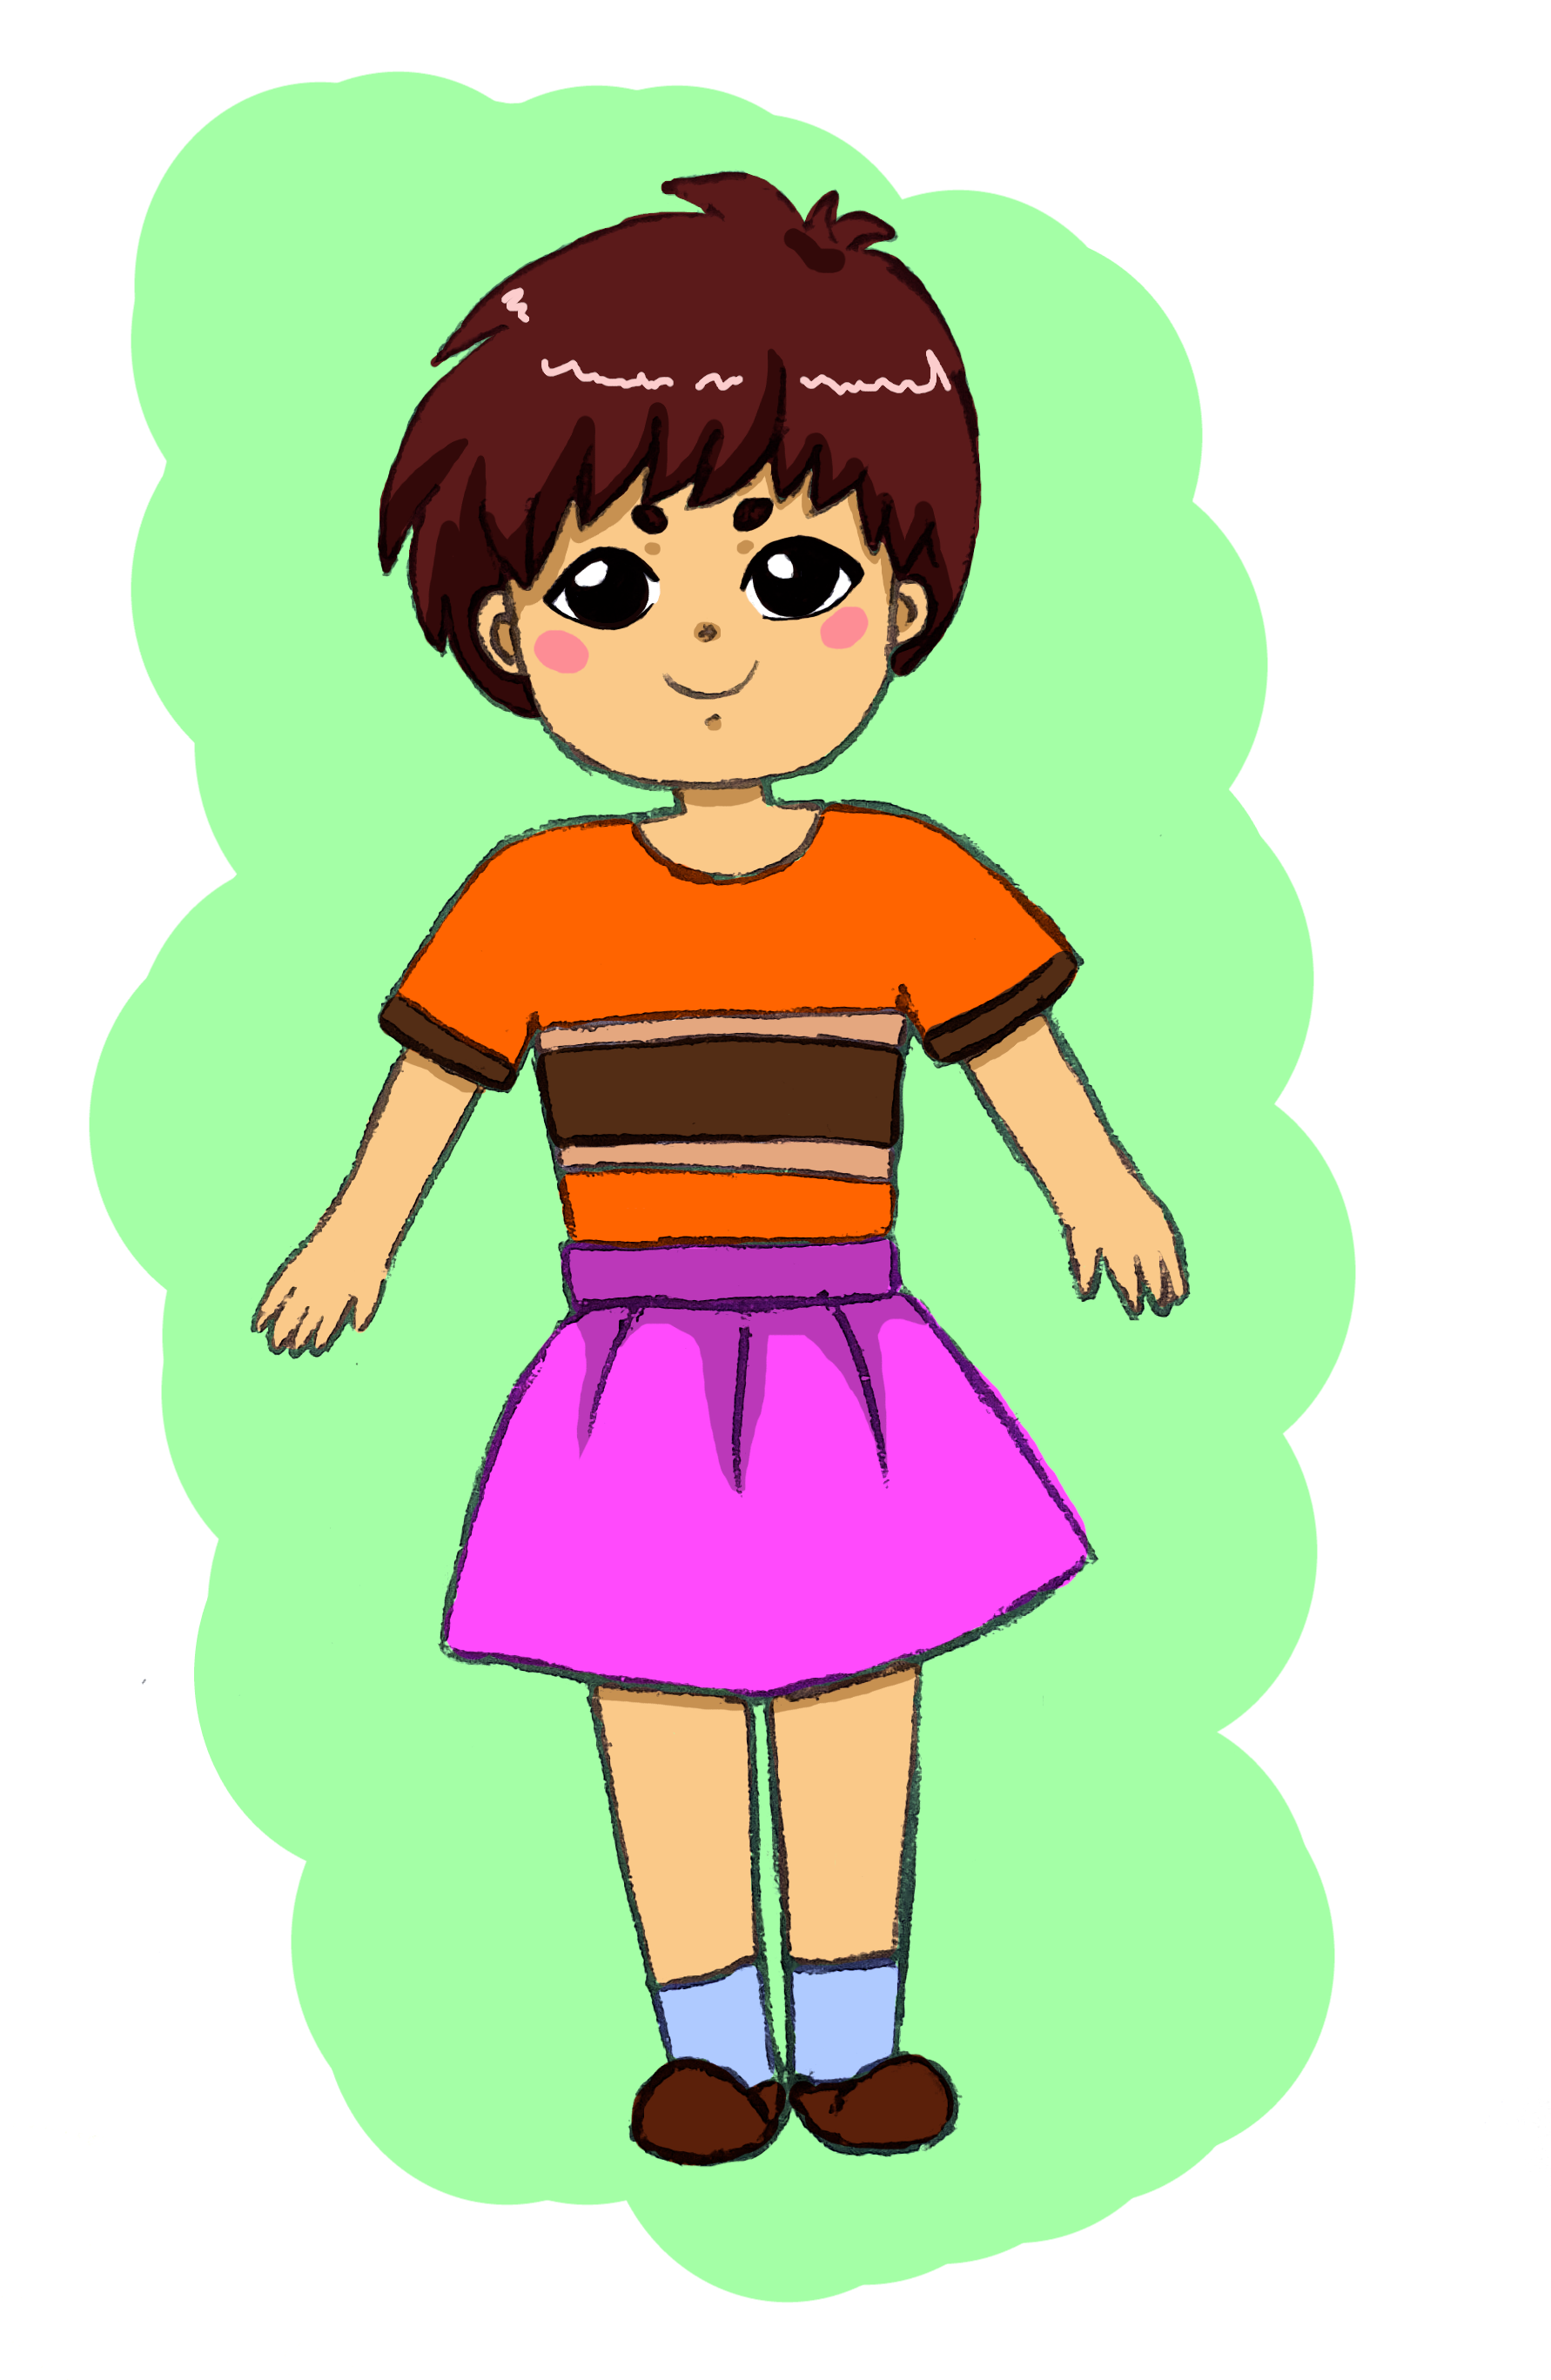 A little doll child with short brown hair, wearing a shirt with stripes and a purple skirt with blue socks.